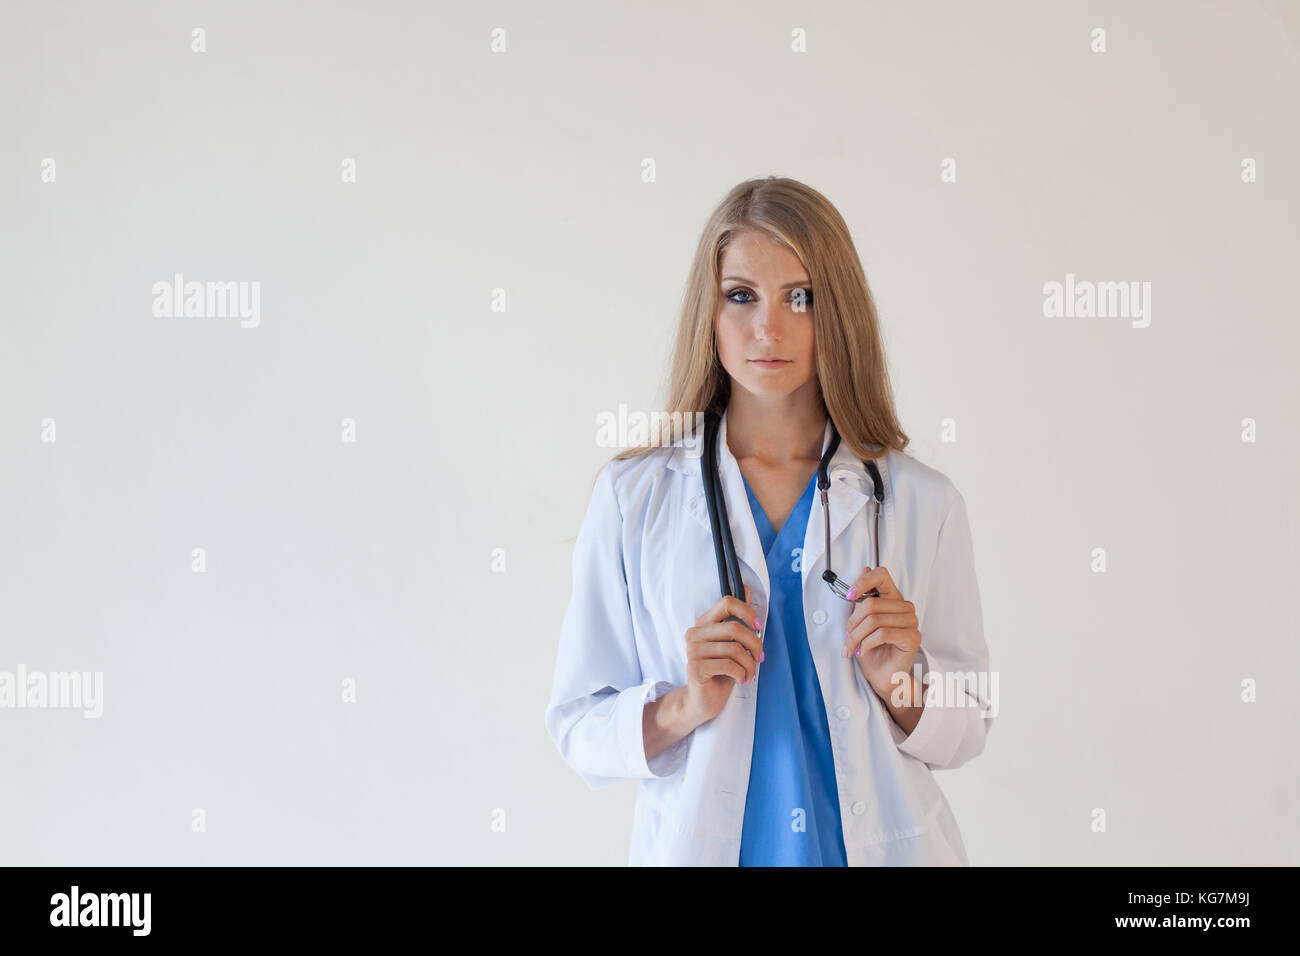 female doctor with stethoscope in hospital nurse - Stock Image